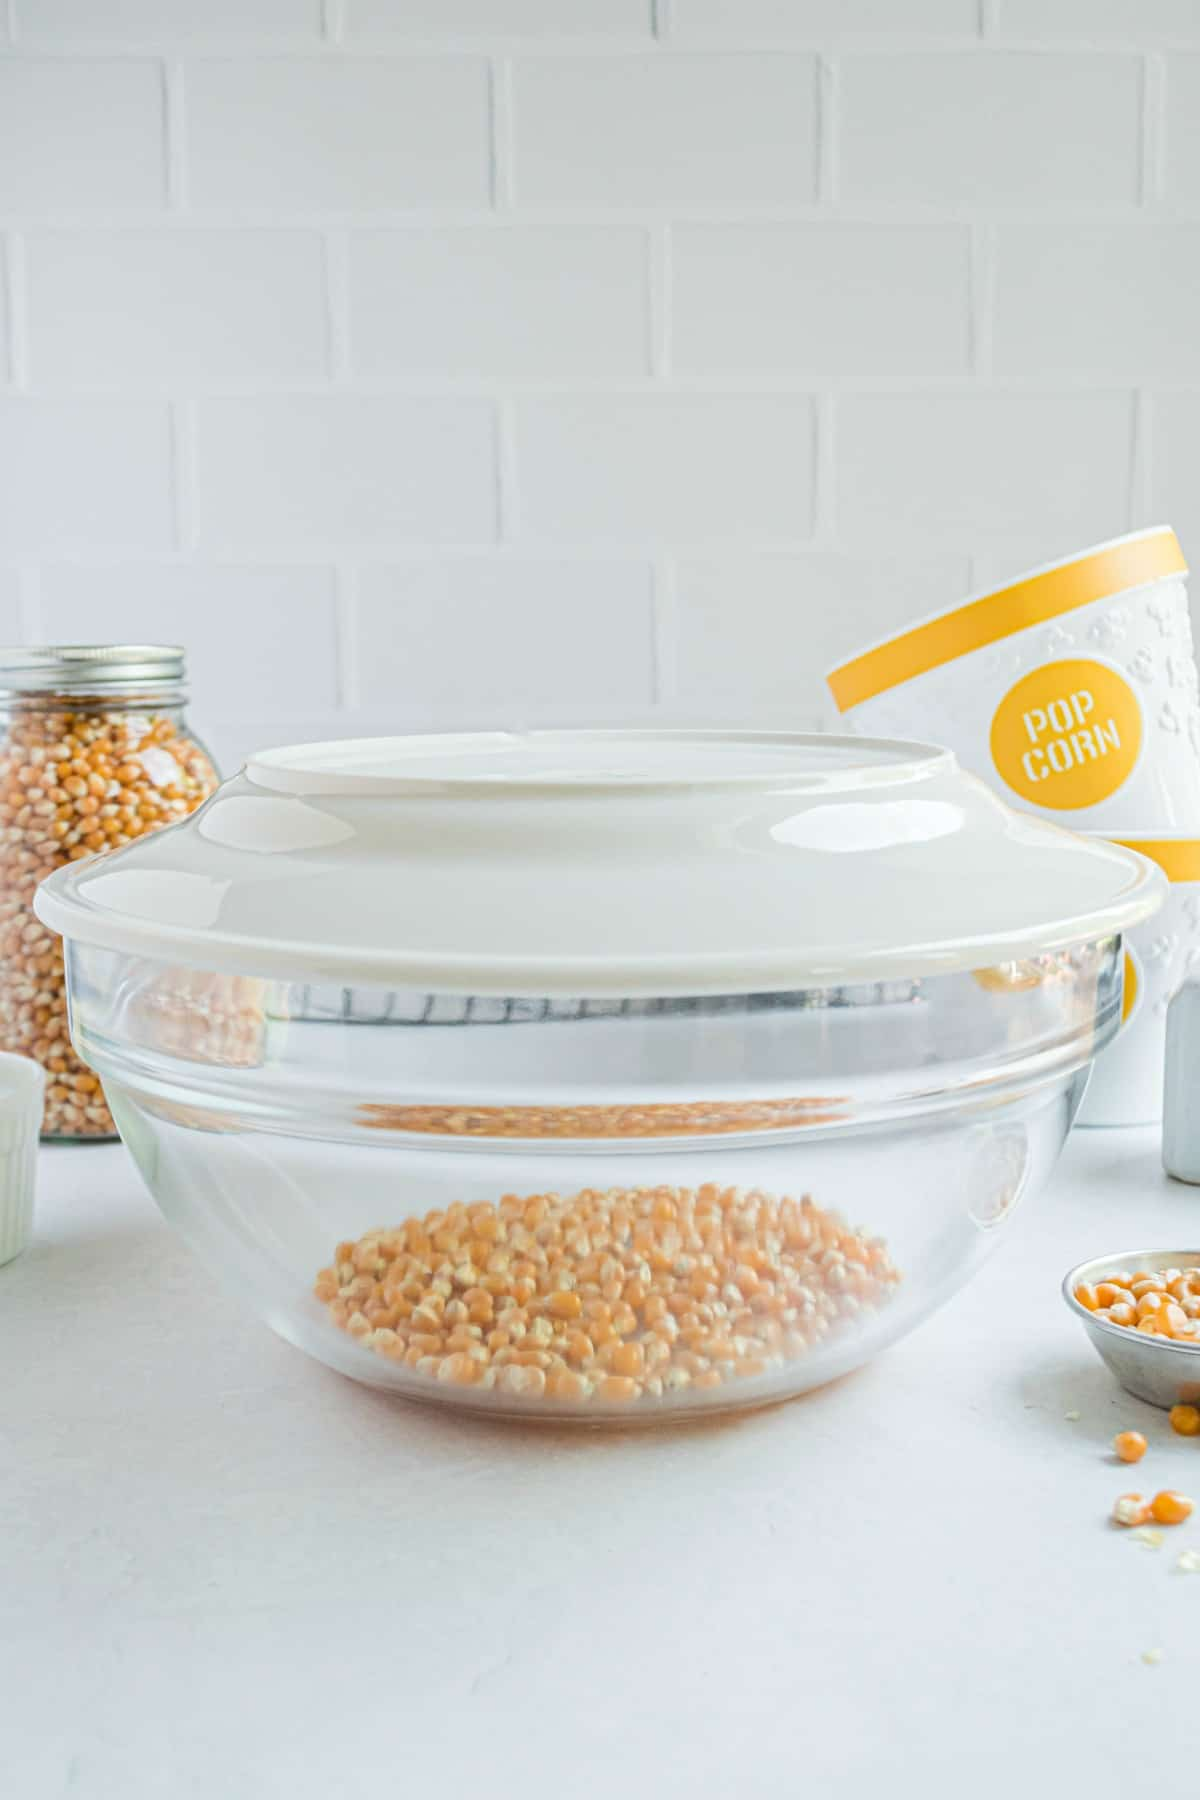 Glass bowl with white plate and popcorn kernels in bowl.